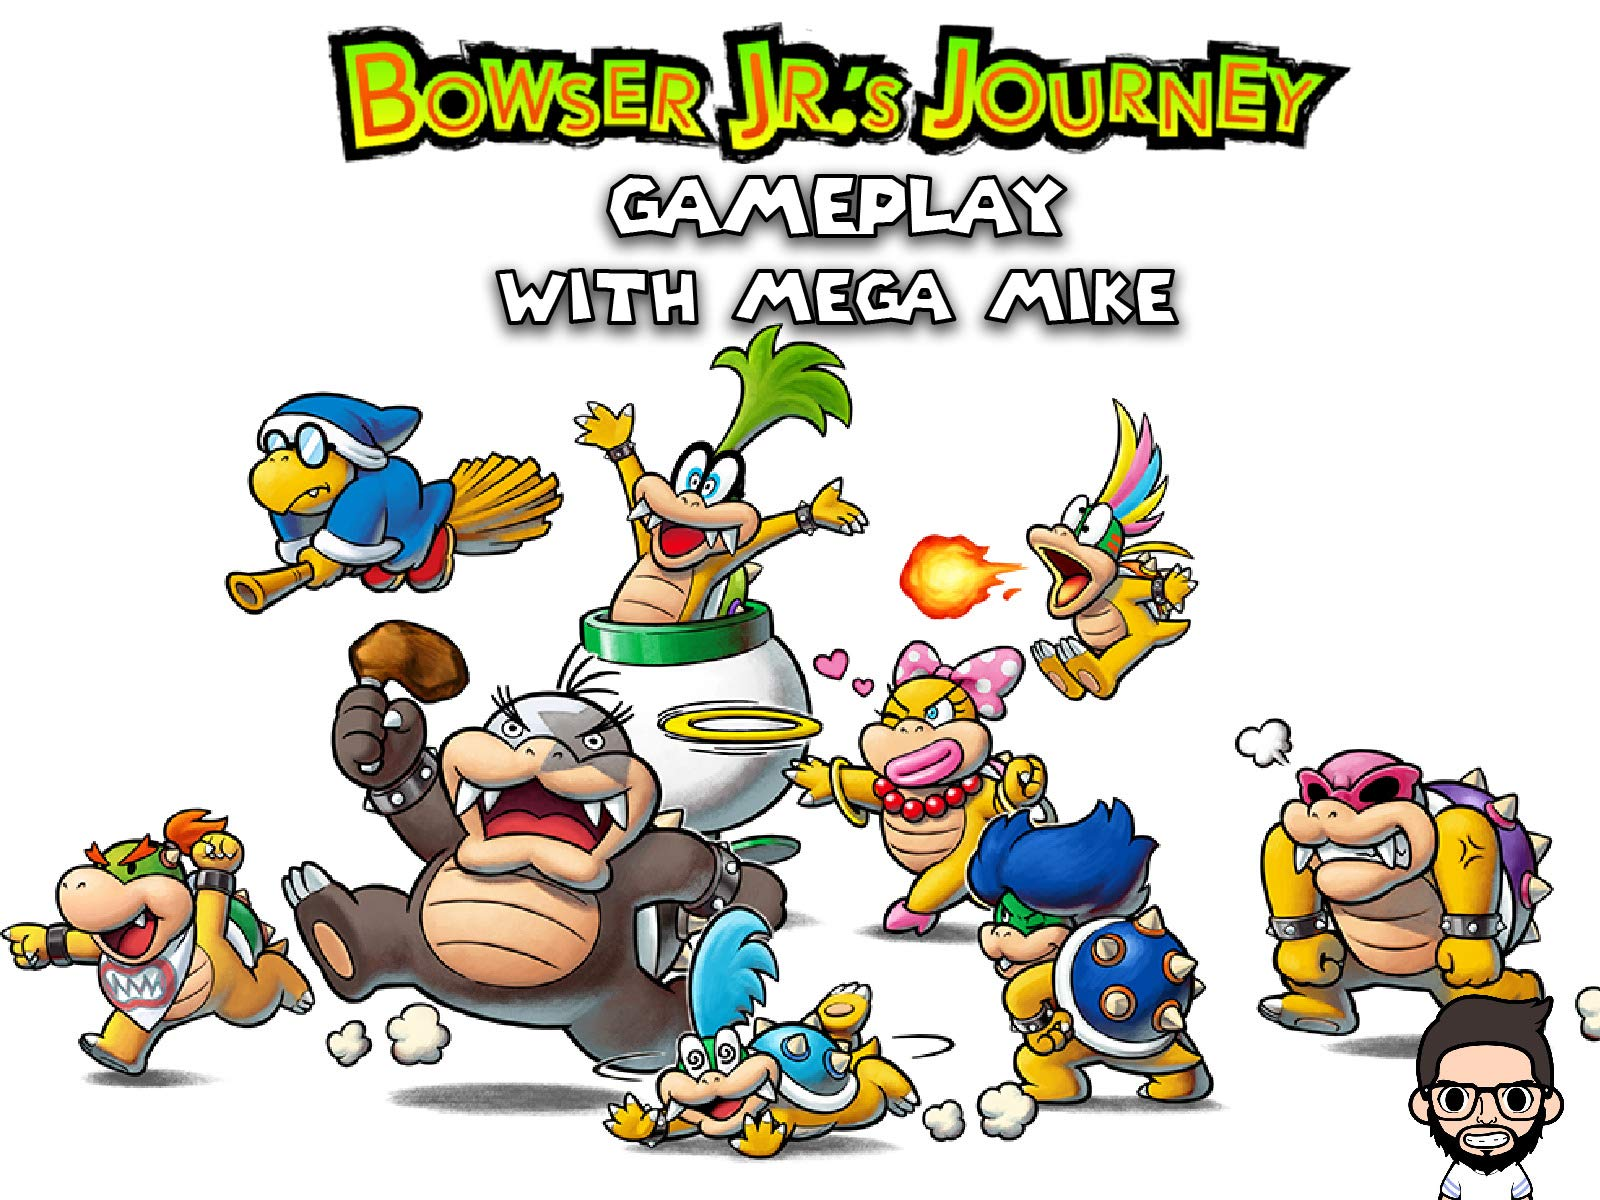 Bowser Jr.'s Journey Gameplay With Mega Mike - Season 1